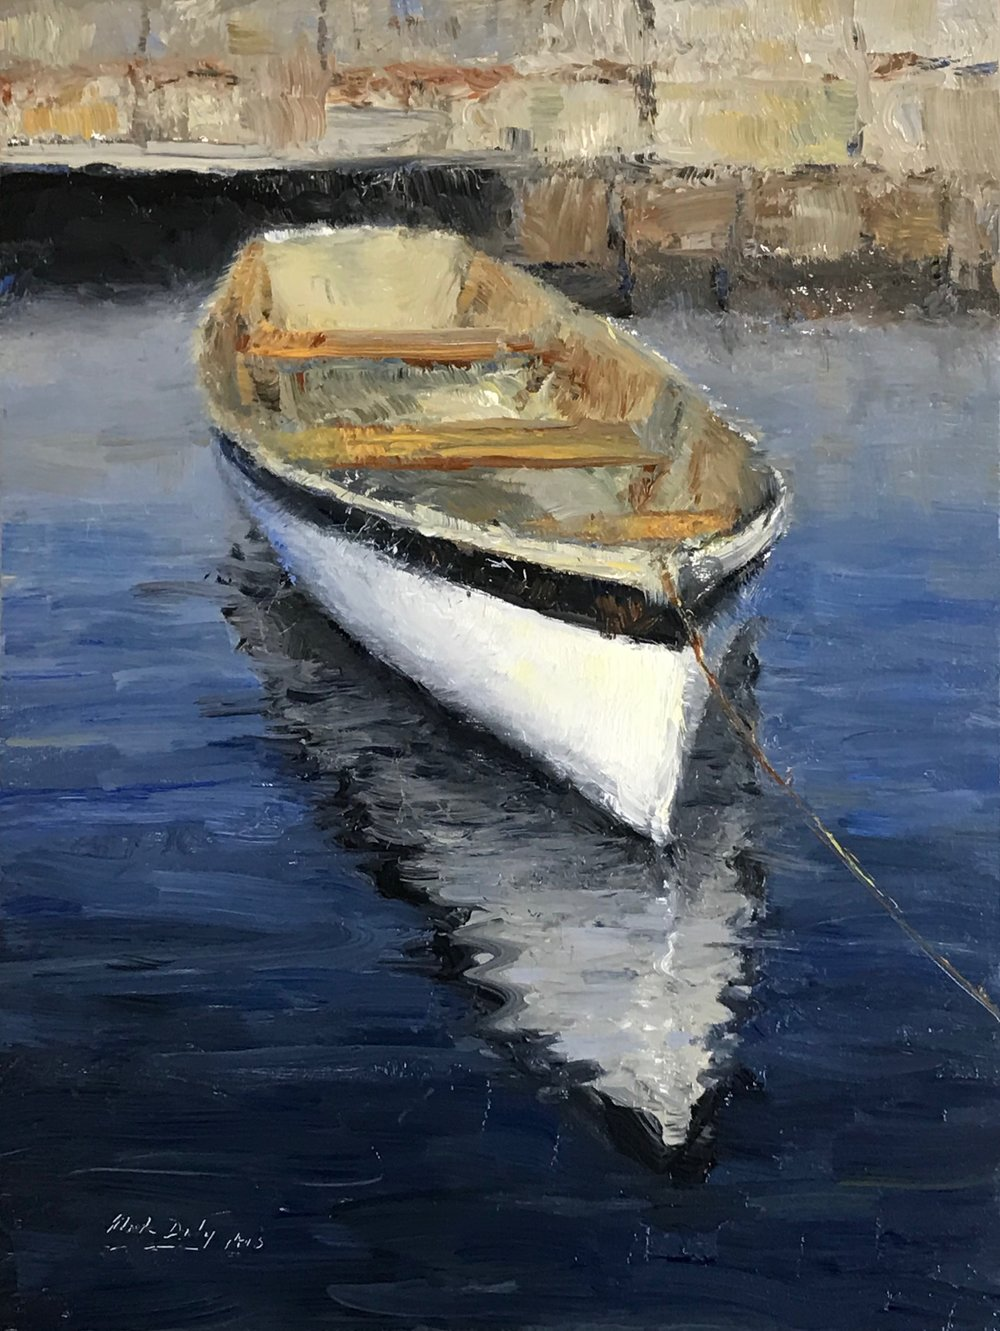 White Boat Reflections, Oil 12 x 9. Signed lower left by Mark Daly.